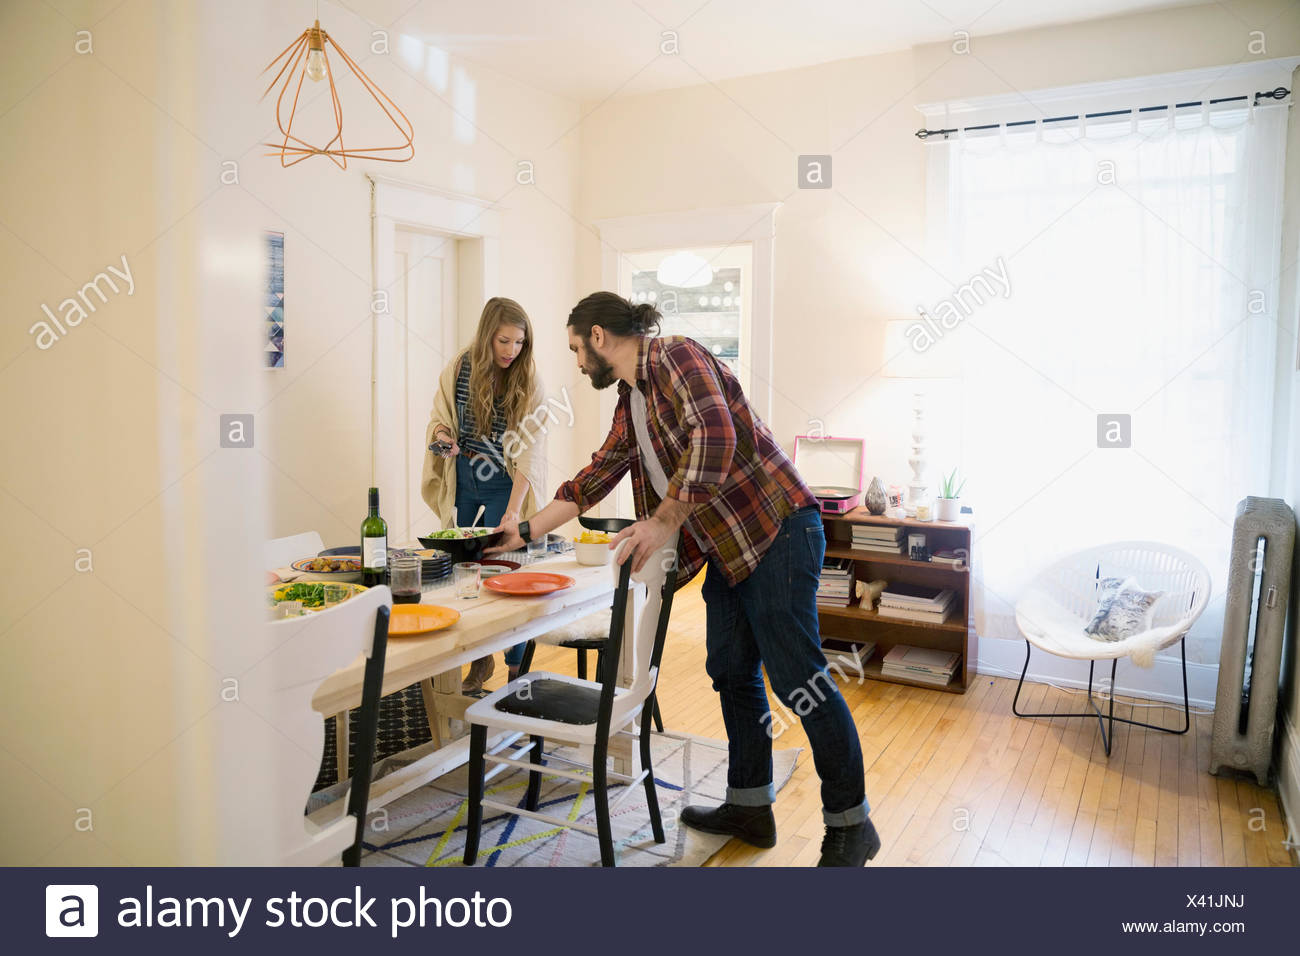 Couple setting the table in dining room - Stock Image